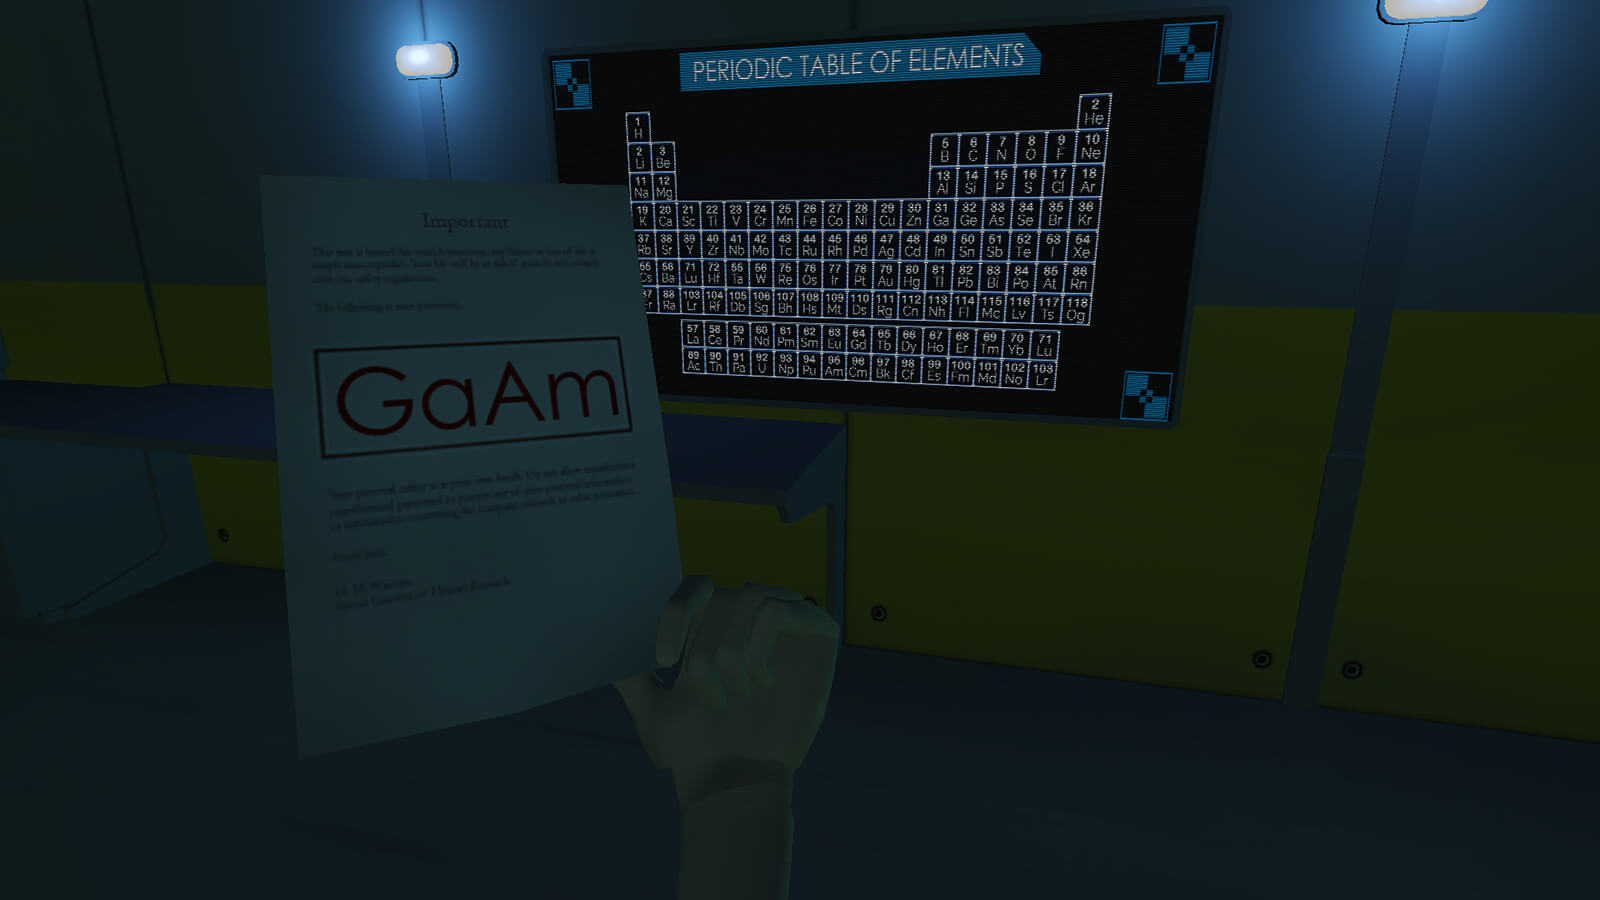 "In a dark room, a sheet of paper reading ""GaAm"" is held up to a black-and-blue Periodic Table of Elements poster on the wall."